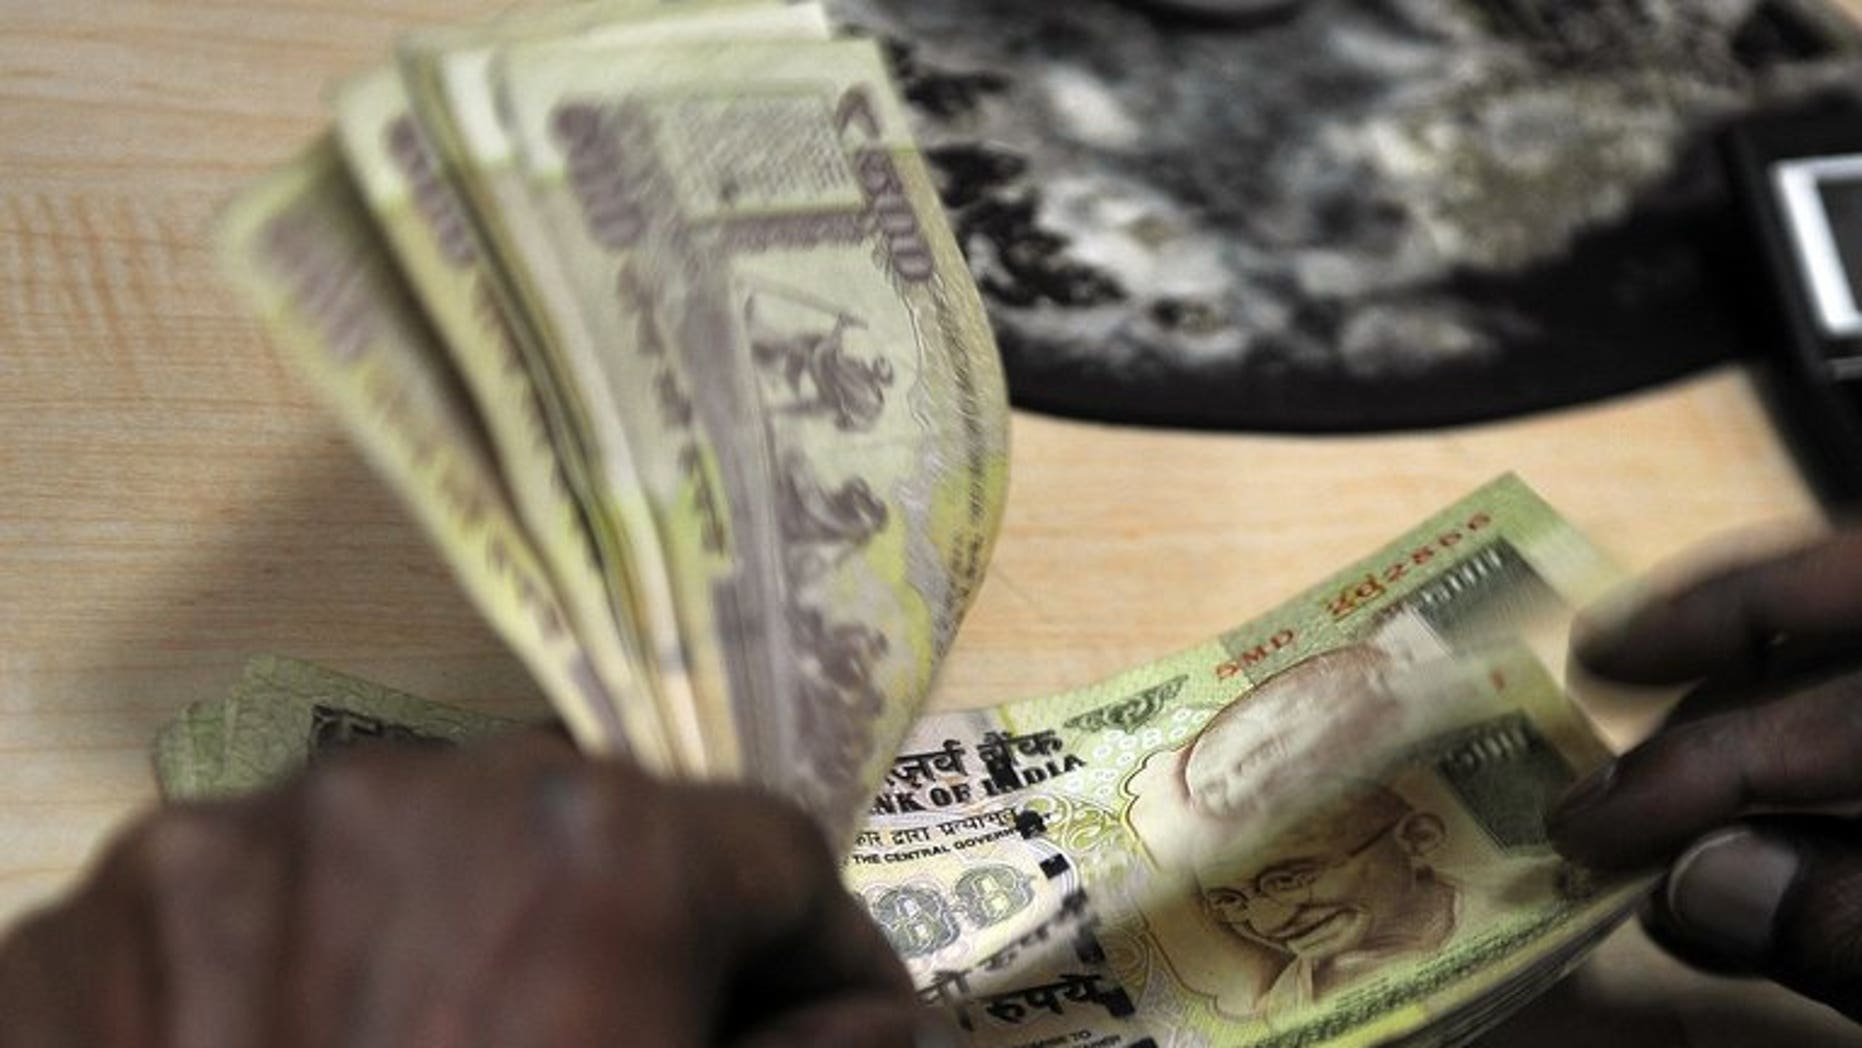 Indian rupee notes are being at a foreign exchange office in Mumbai, on August 6, 2013. The rupee plunged to a new record low against the dollar on Friday and stocks slid 2.66 percent over fears that foreign capital could flow back to the United States as the American economy improves.